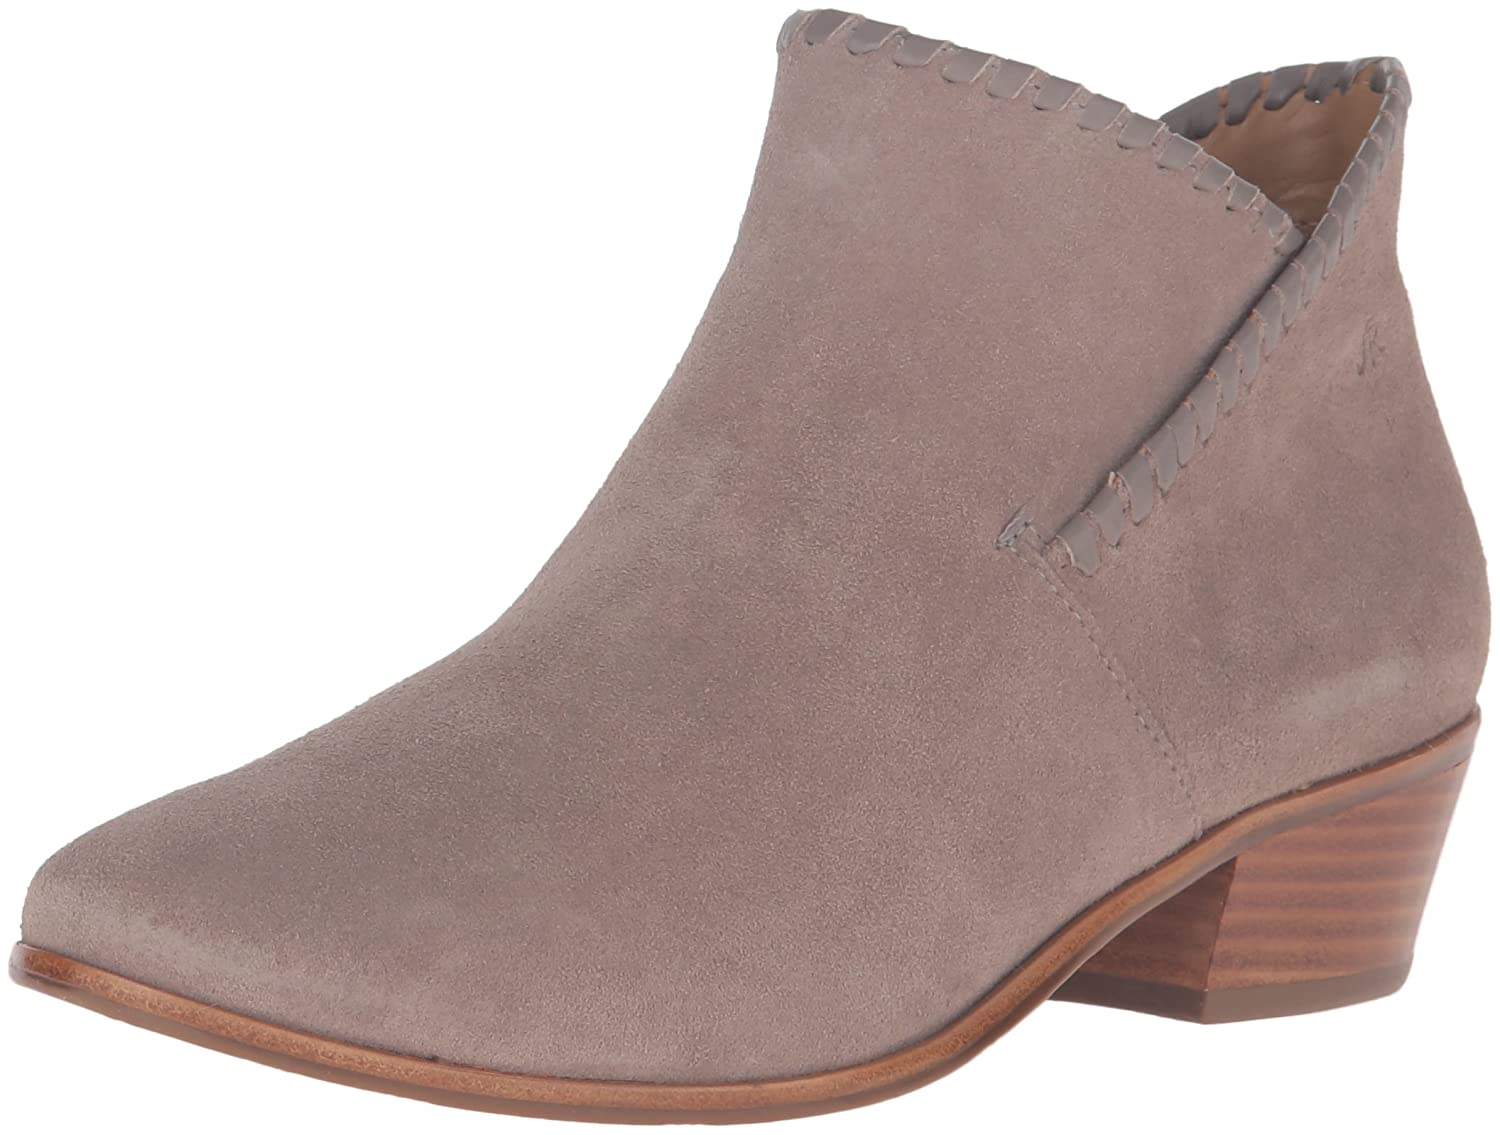 Jack Rogers Women's Sadie Suede Boot B01DCSS4RM 5.5 B(M) US|Light Grey